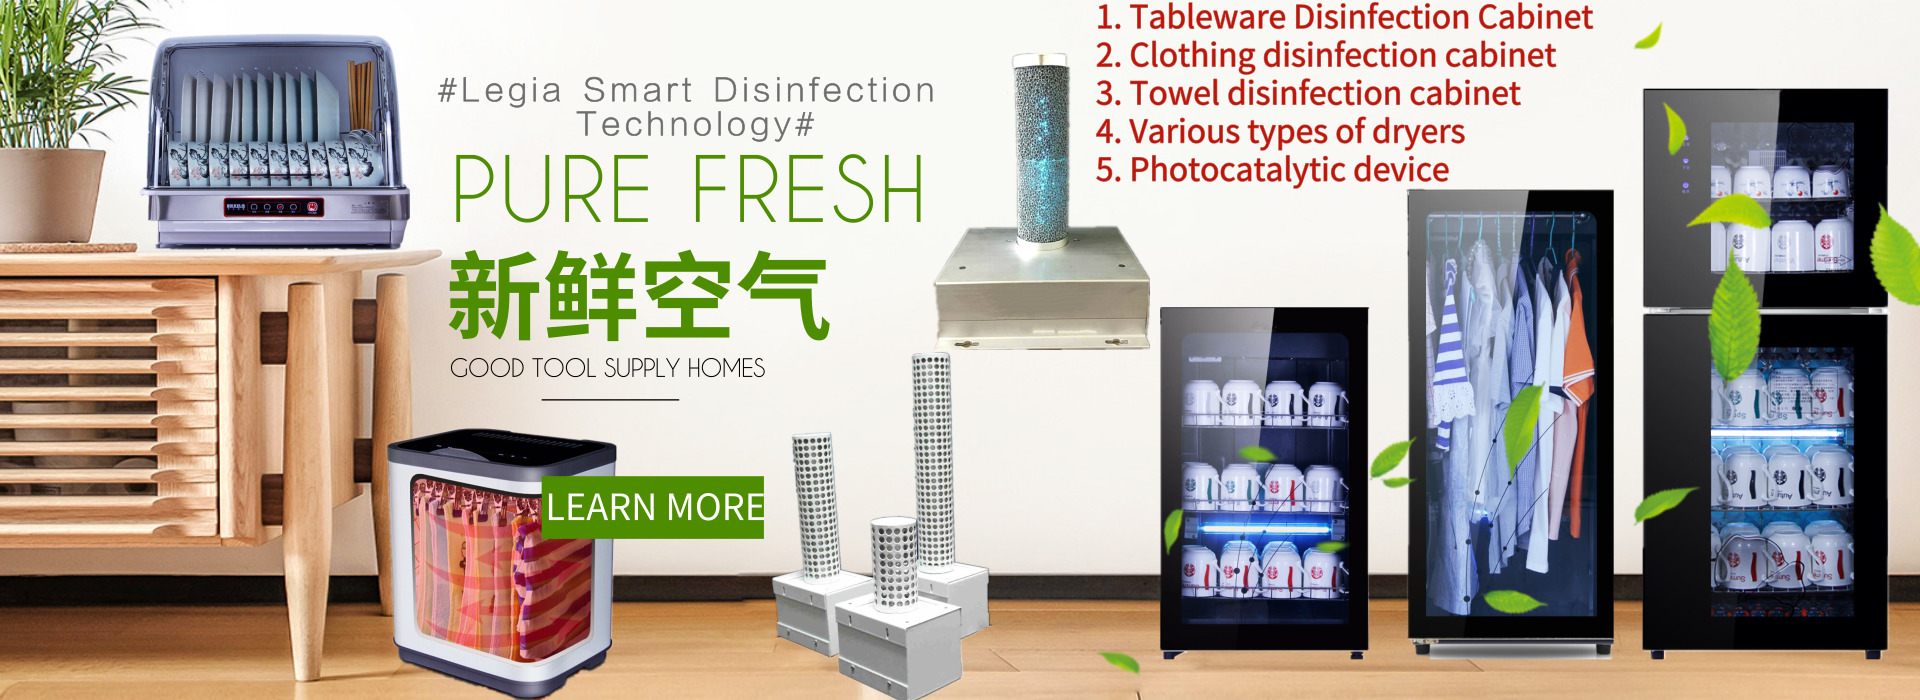 Specialized manufacturers of disinfection cabinets and disinfection devices